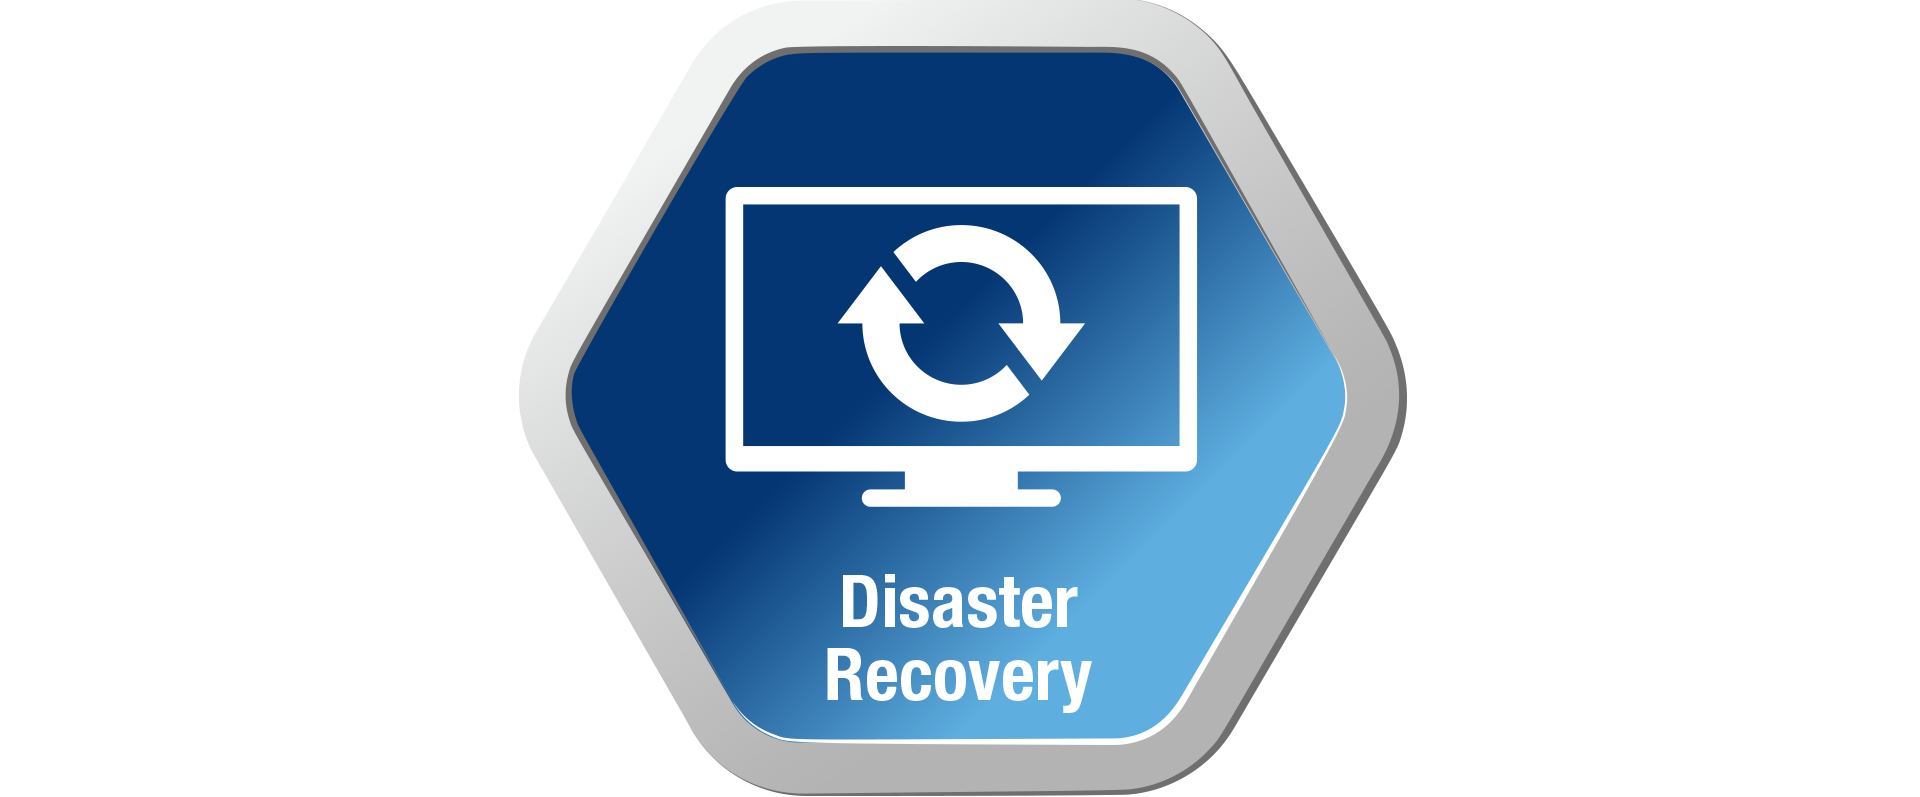 Advanced Fail-Safe & Disaster Recovery